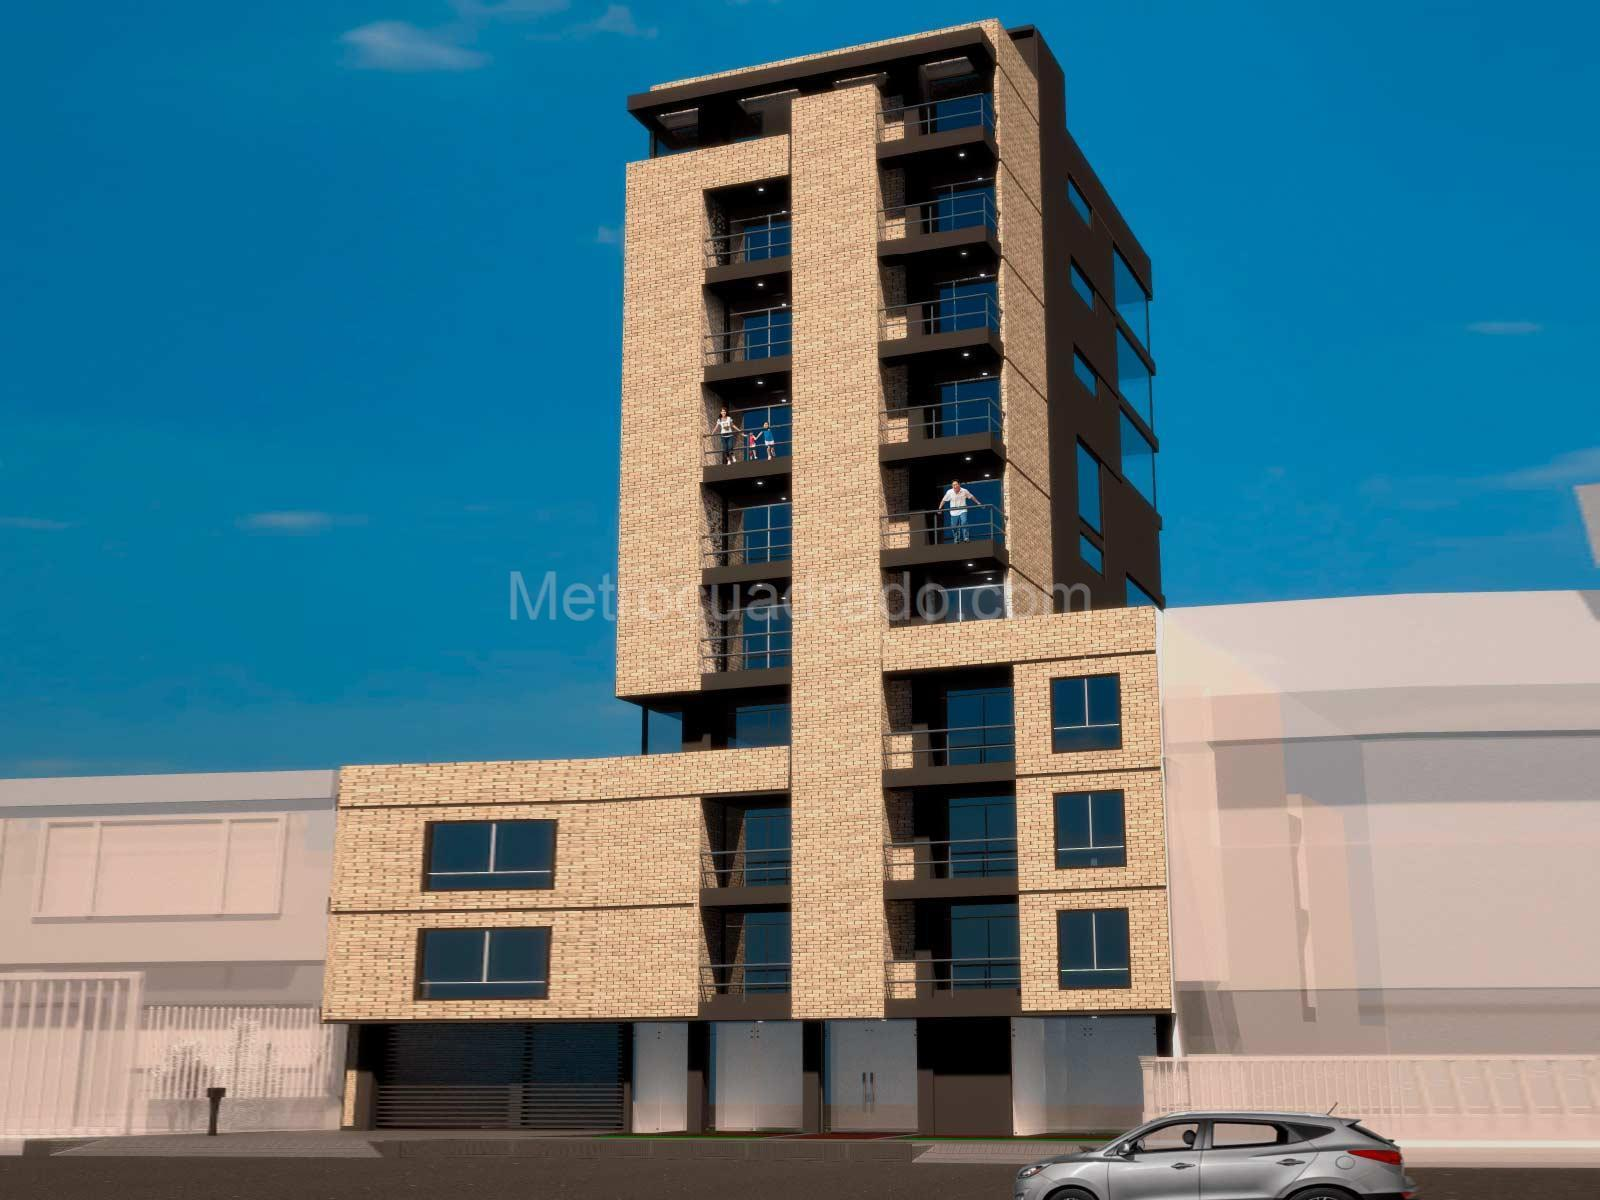 Apartamentos nuevos en Campin occidental, Torre de la Merced